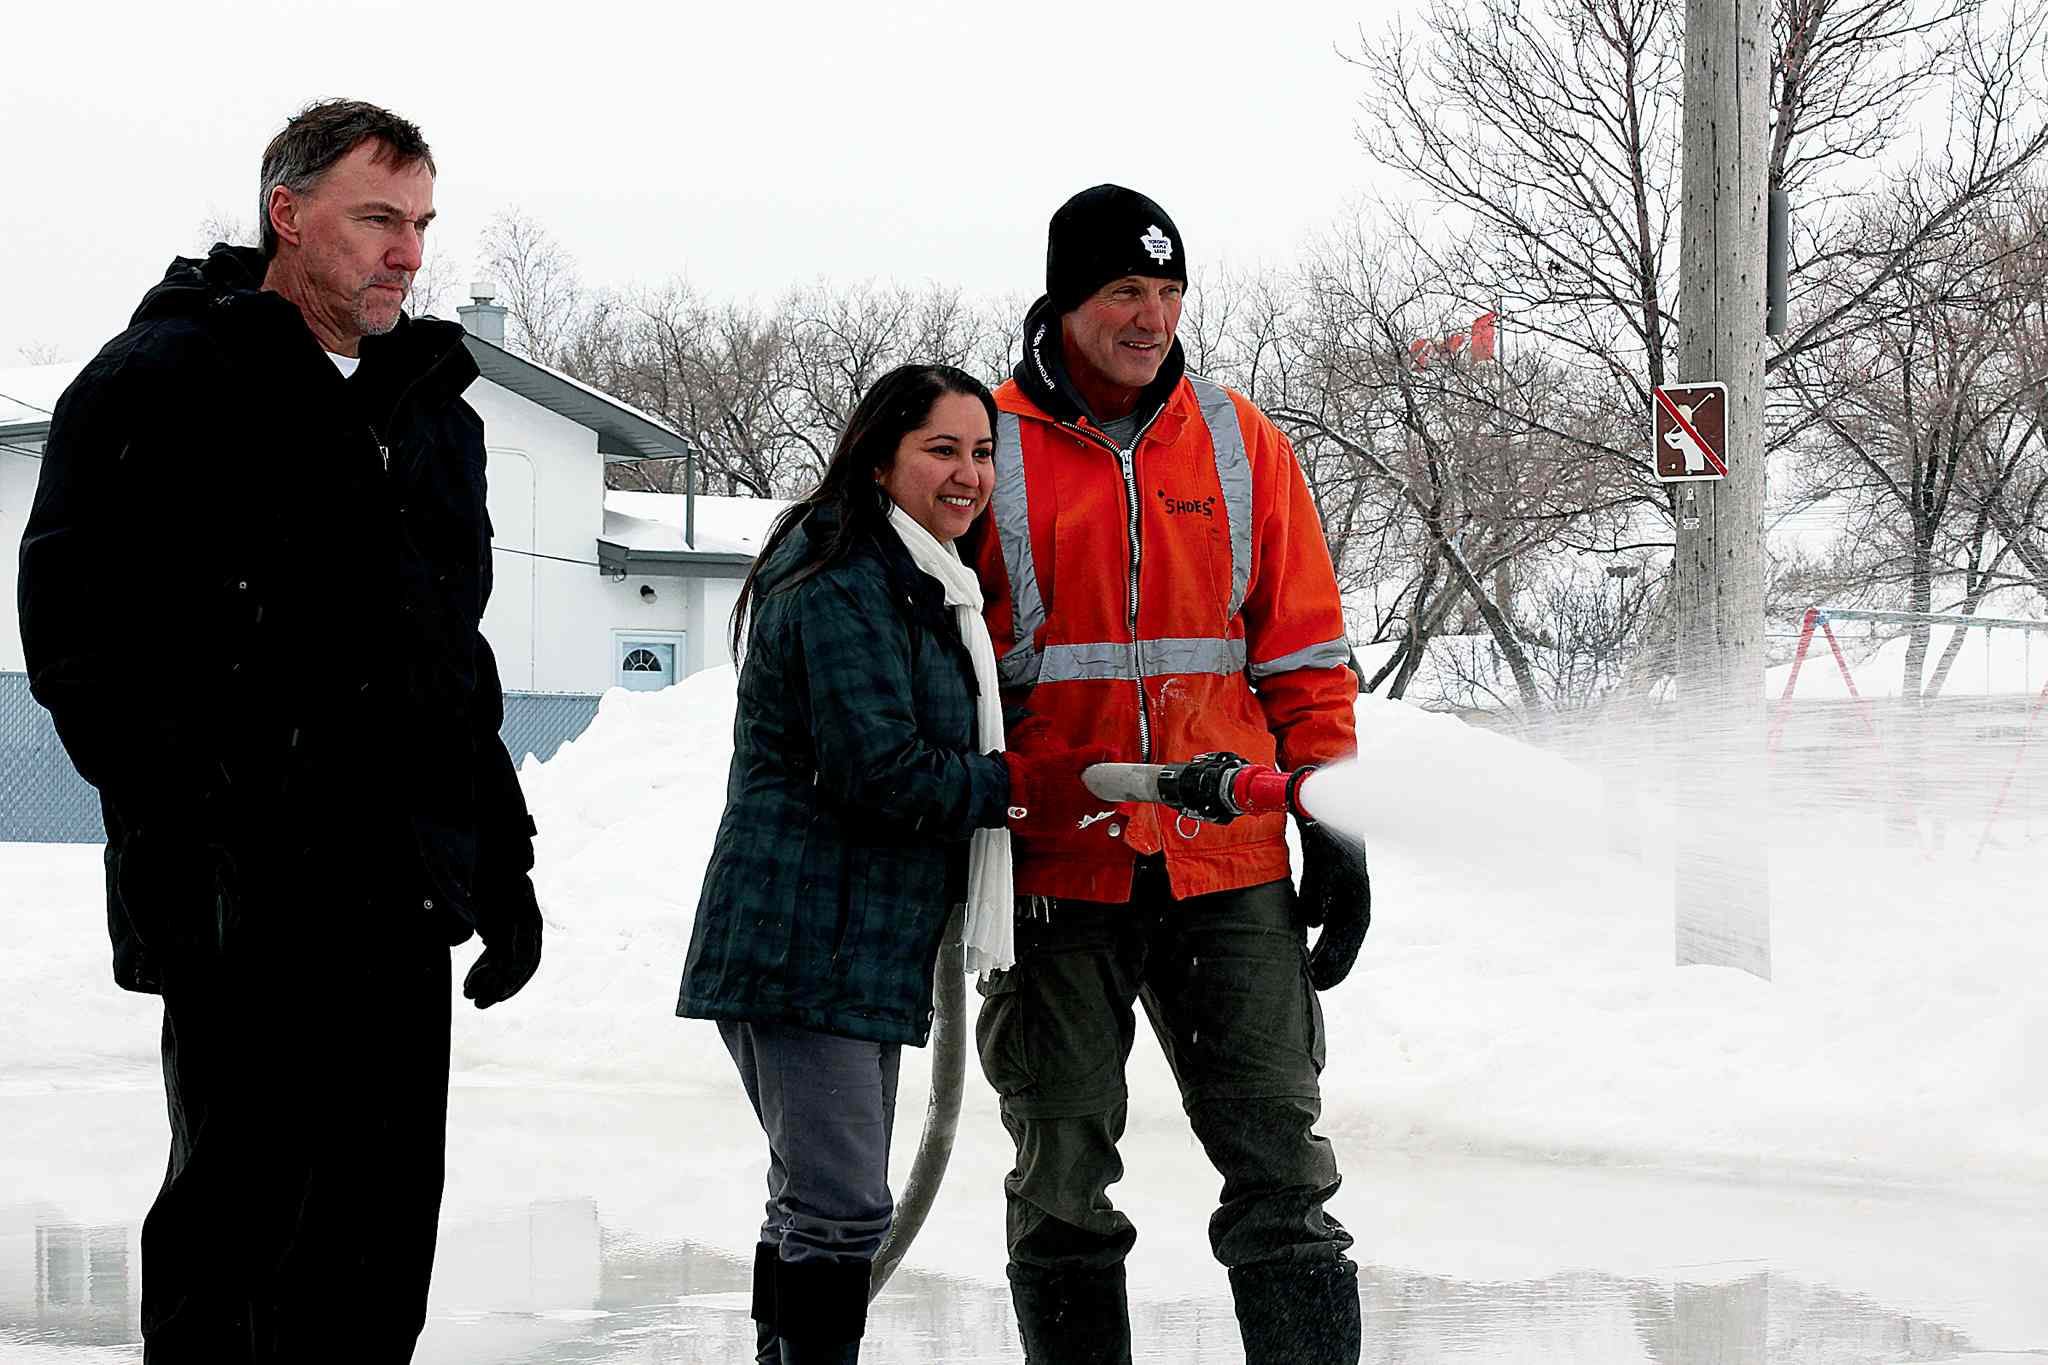 (From left) Jack Lubinski, superintendent with Parks North; Devi Sharma, city councillor for Old Kildonan; and Bill Hasiuk, parks worker, help flood a recreational skating rink at Gilia Park in Garden City.